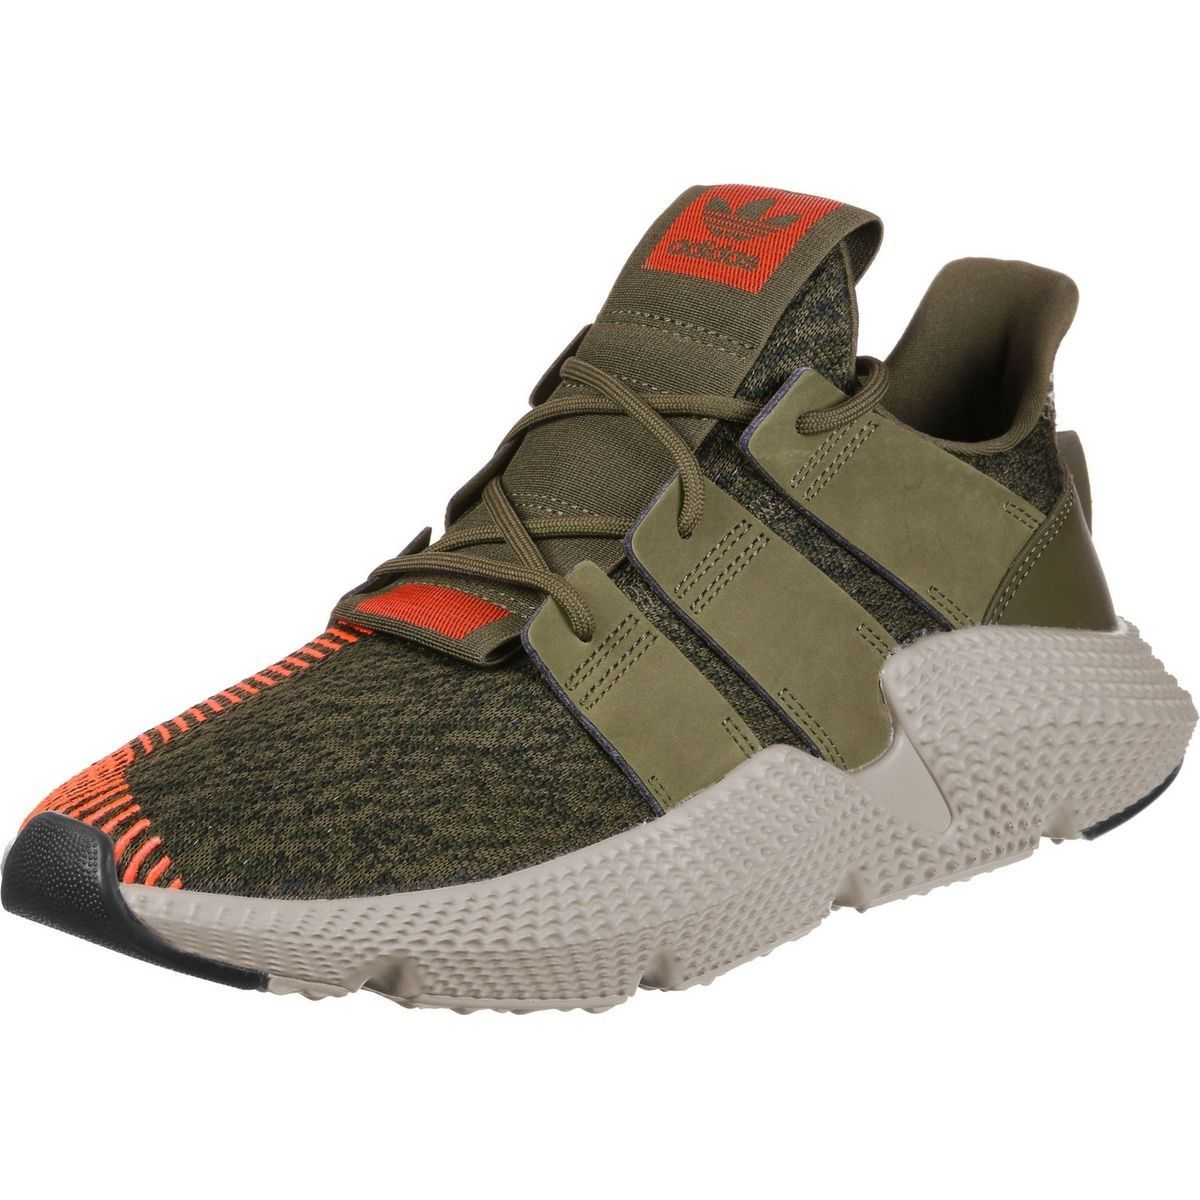 sale retailer factory price uk store Basket Prophere - Taille : 40;41;42;43;44;45;46 | Products ...